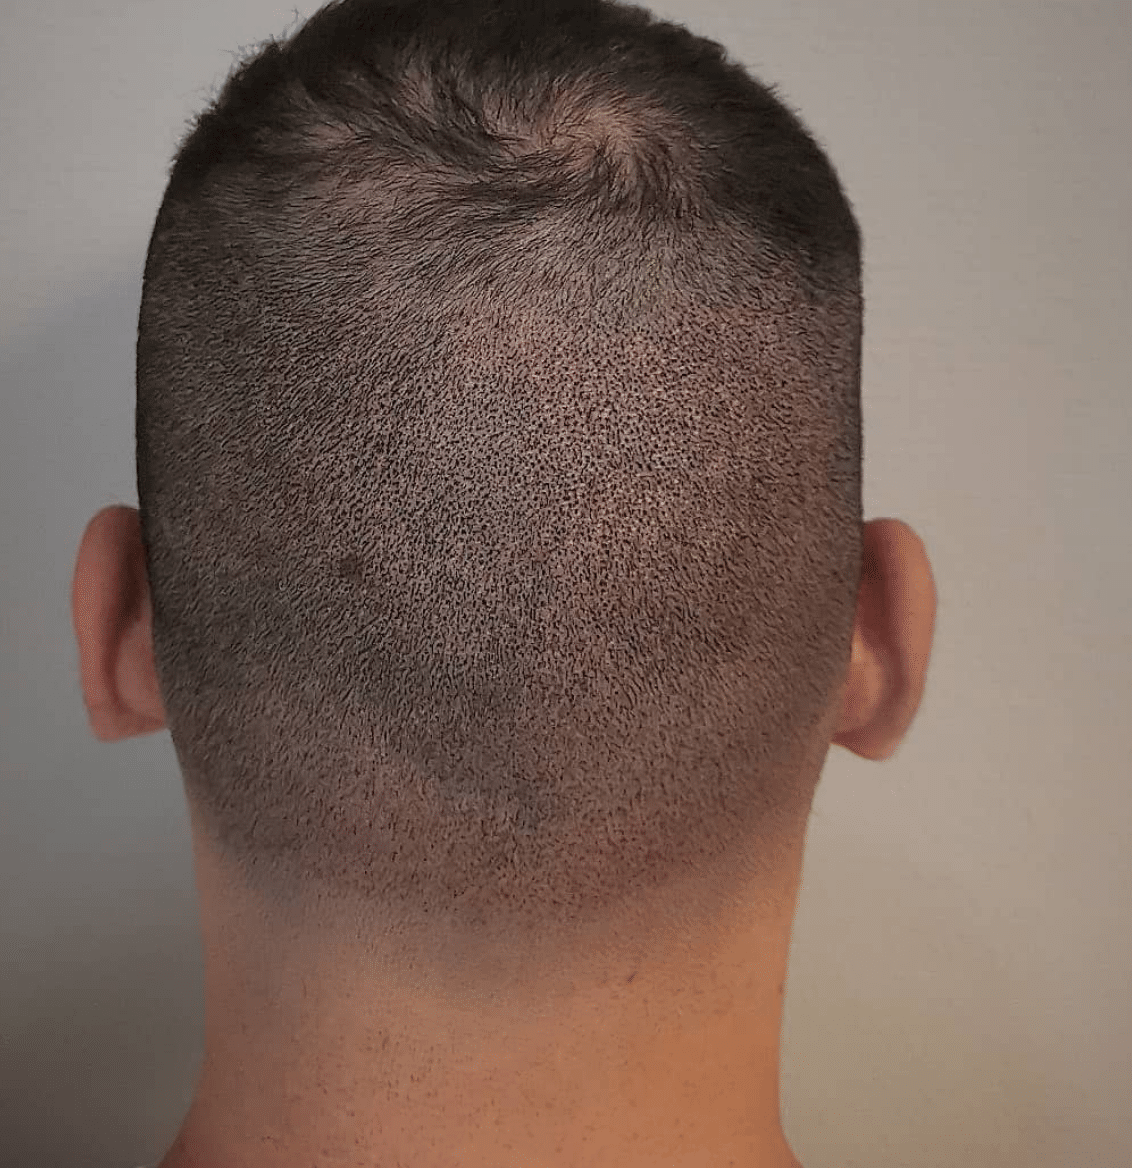 Scalp Micro pigmentation for Hair transplant before pic